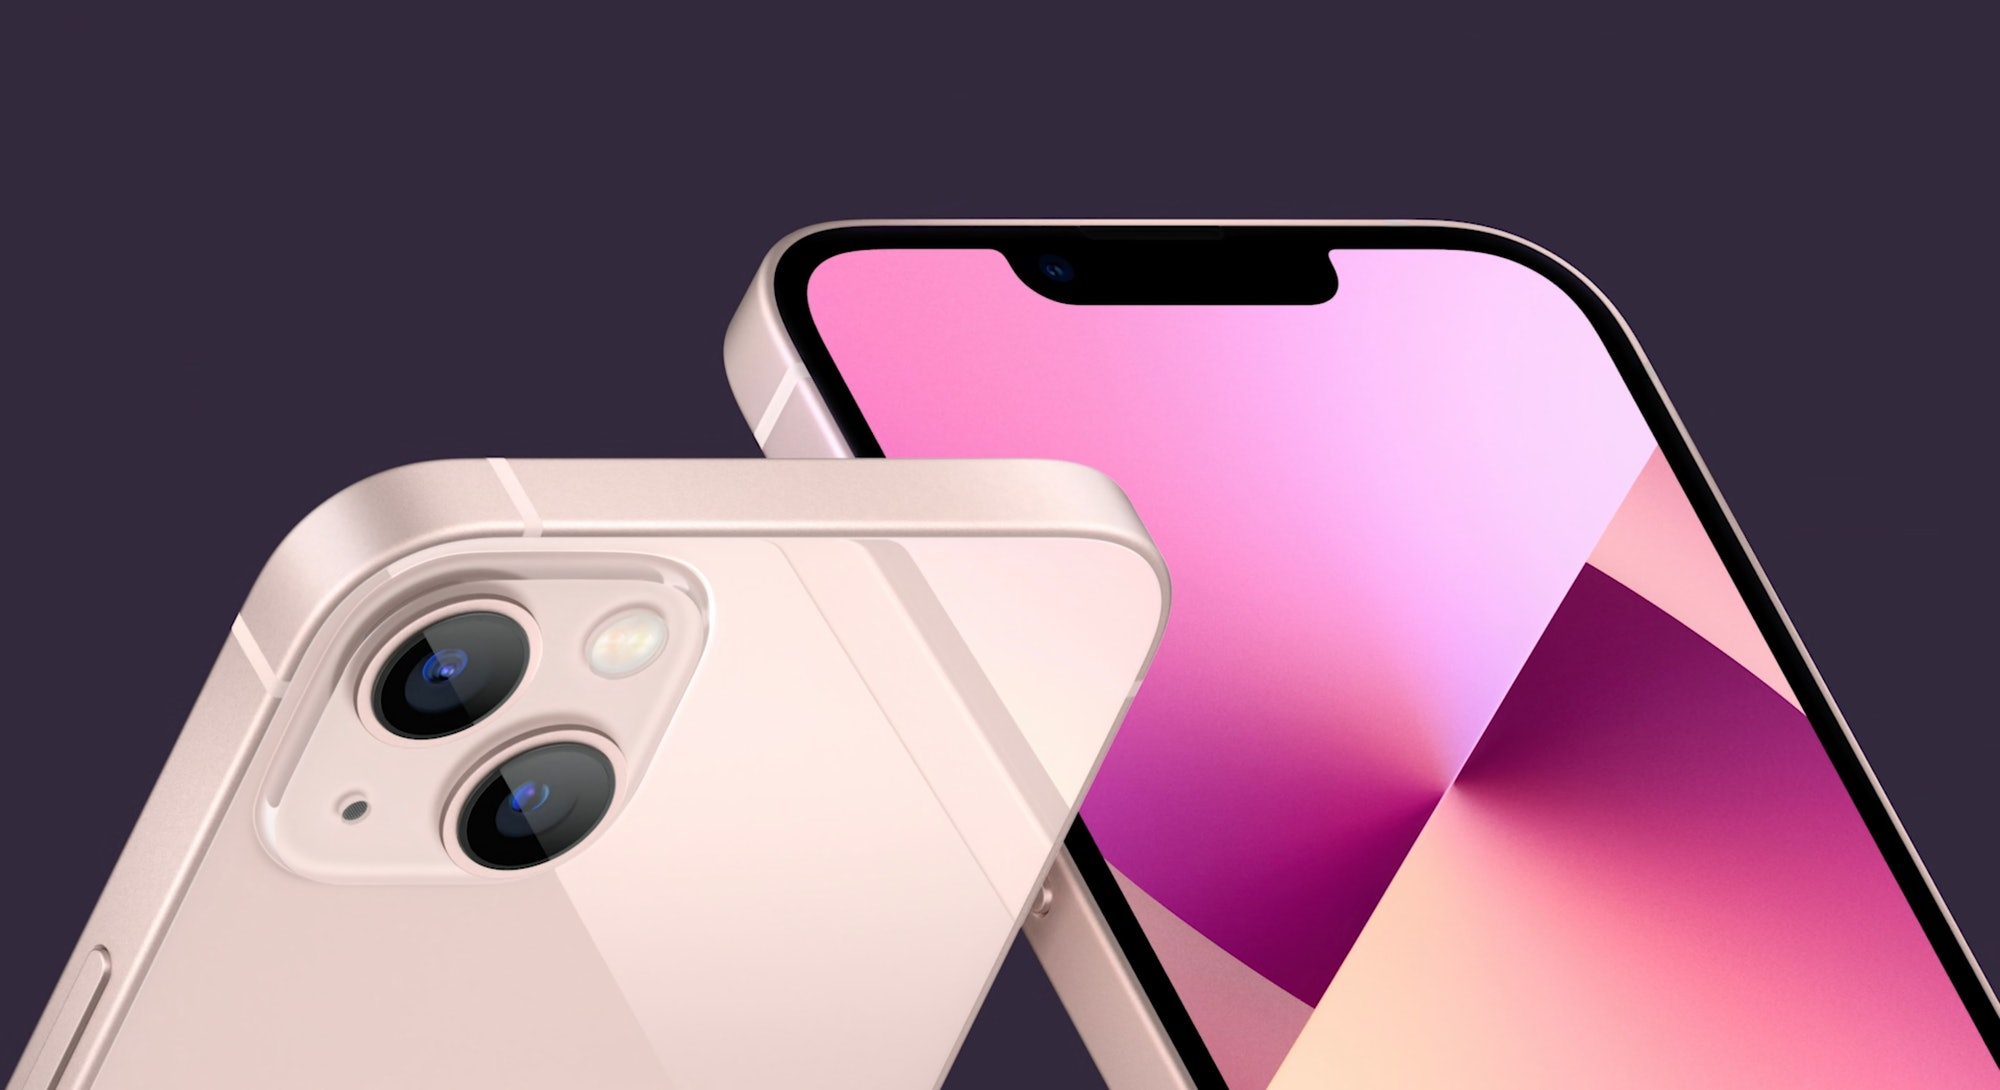 iPhone 13 mini and iPhone 13 design in pink